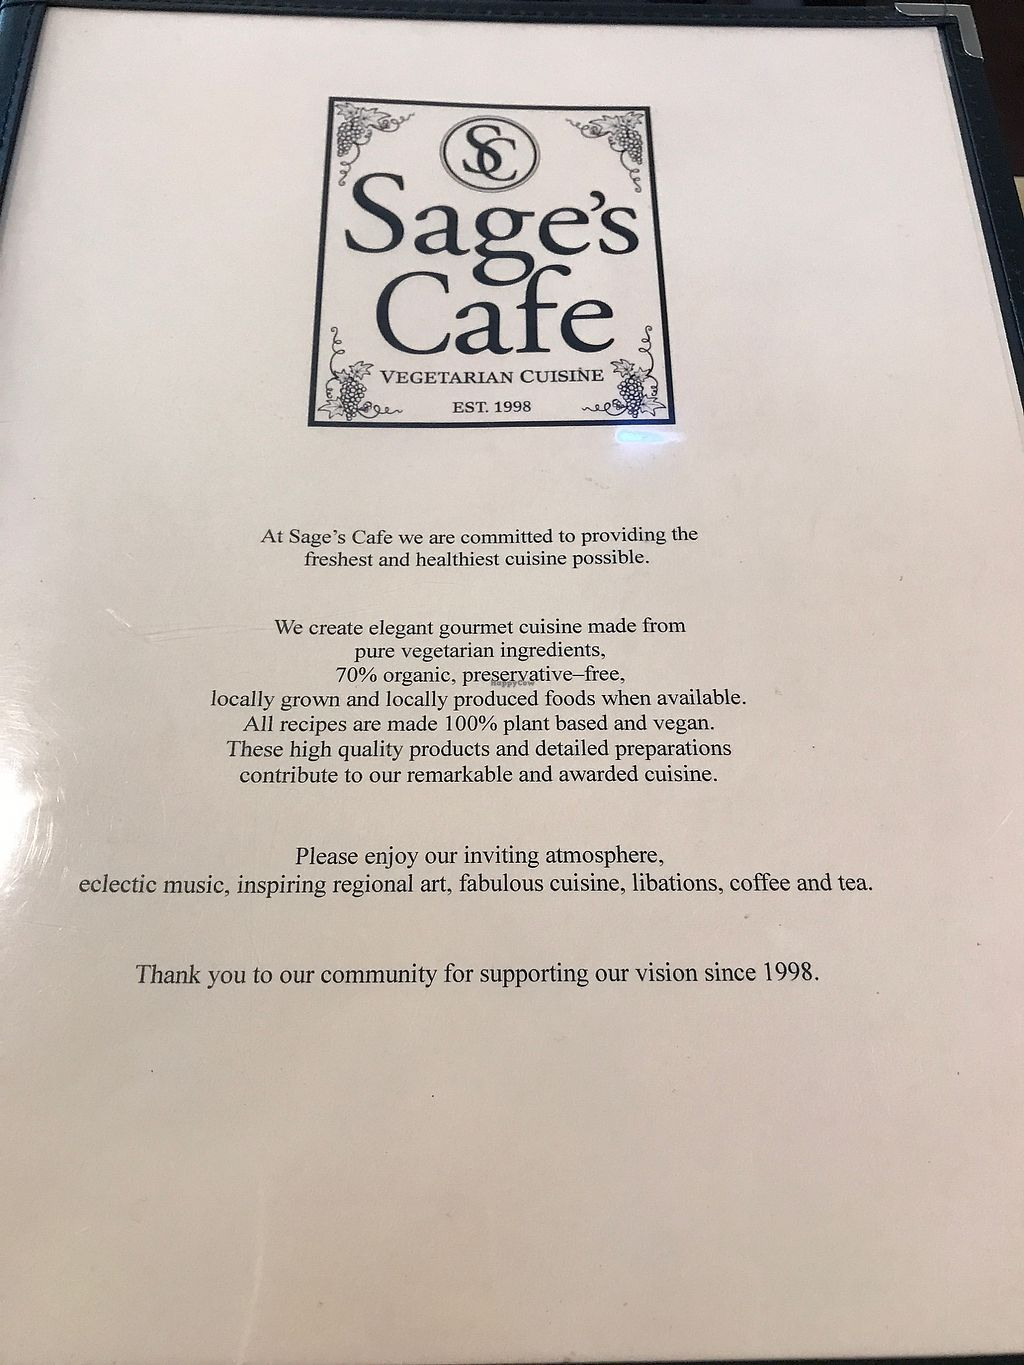 """Photo of Sage's Cafe  by <a href=""""/members/profile/MyGreenTongue"""">MyGreenTongue</a> <br/>front of menu <br/> June 30, 2017  - <a href='/contact/abuse/image/2564/274954'>Report</a>"""